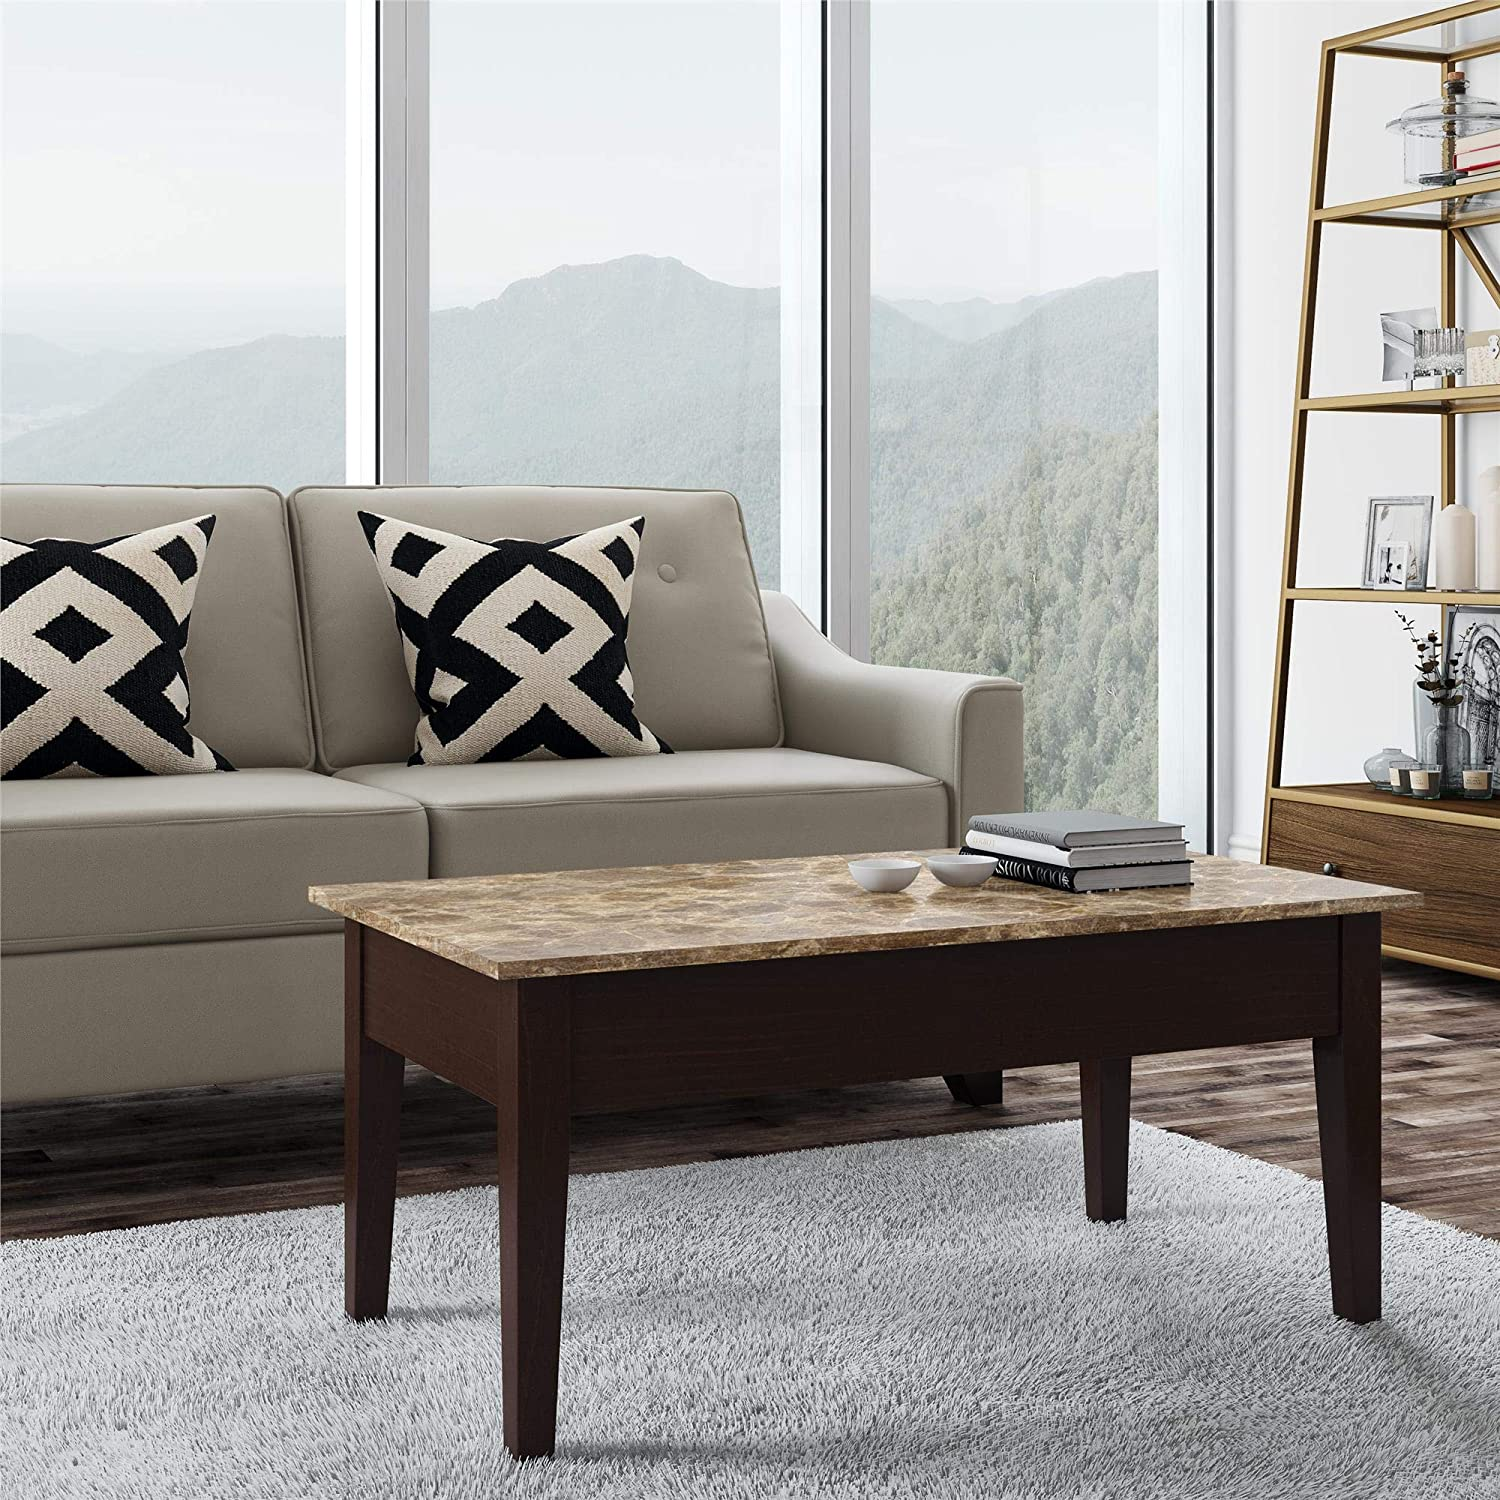 Marble Coffee Table Furniture Village: Dorel Living Faux Marble Lift Top Coffee Table Storage